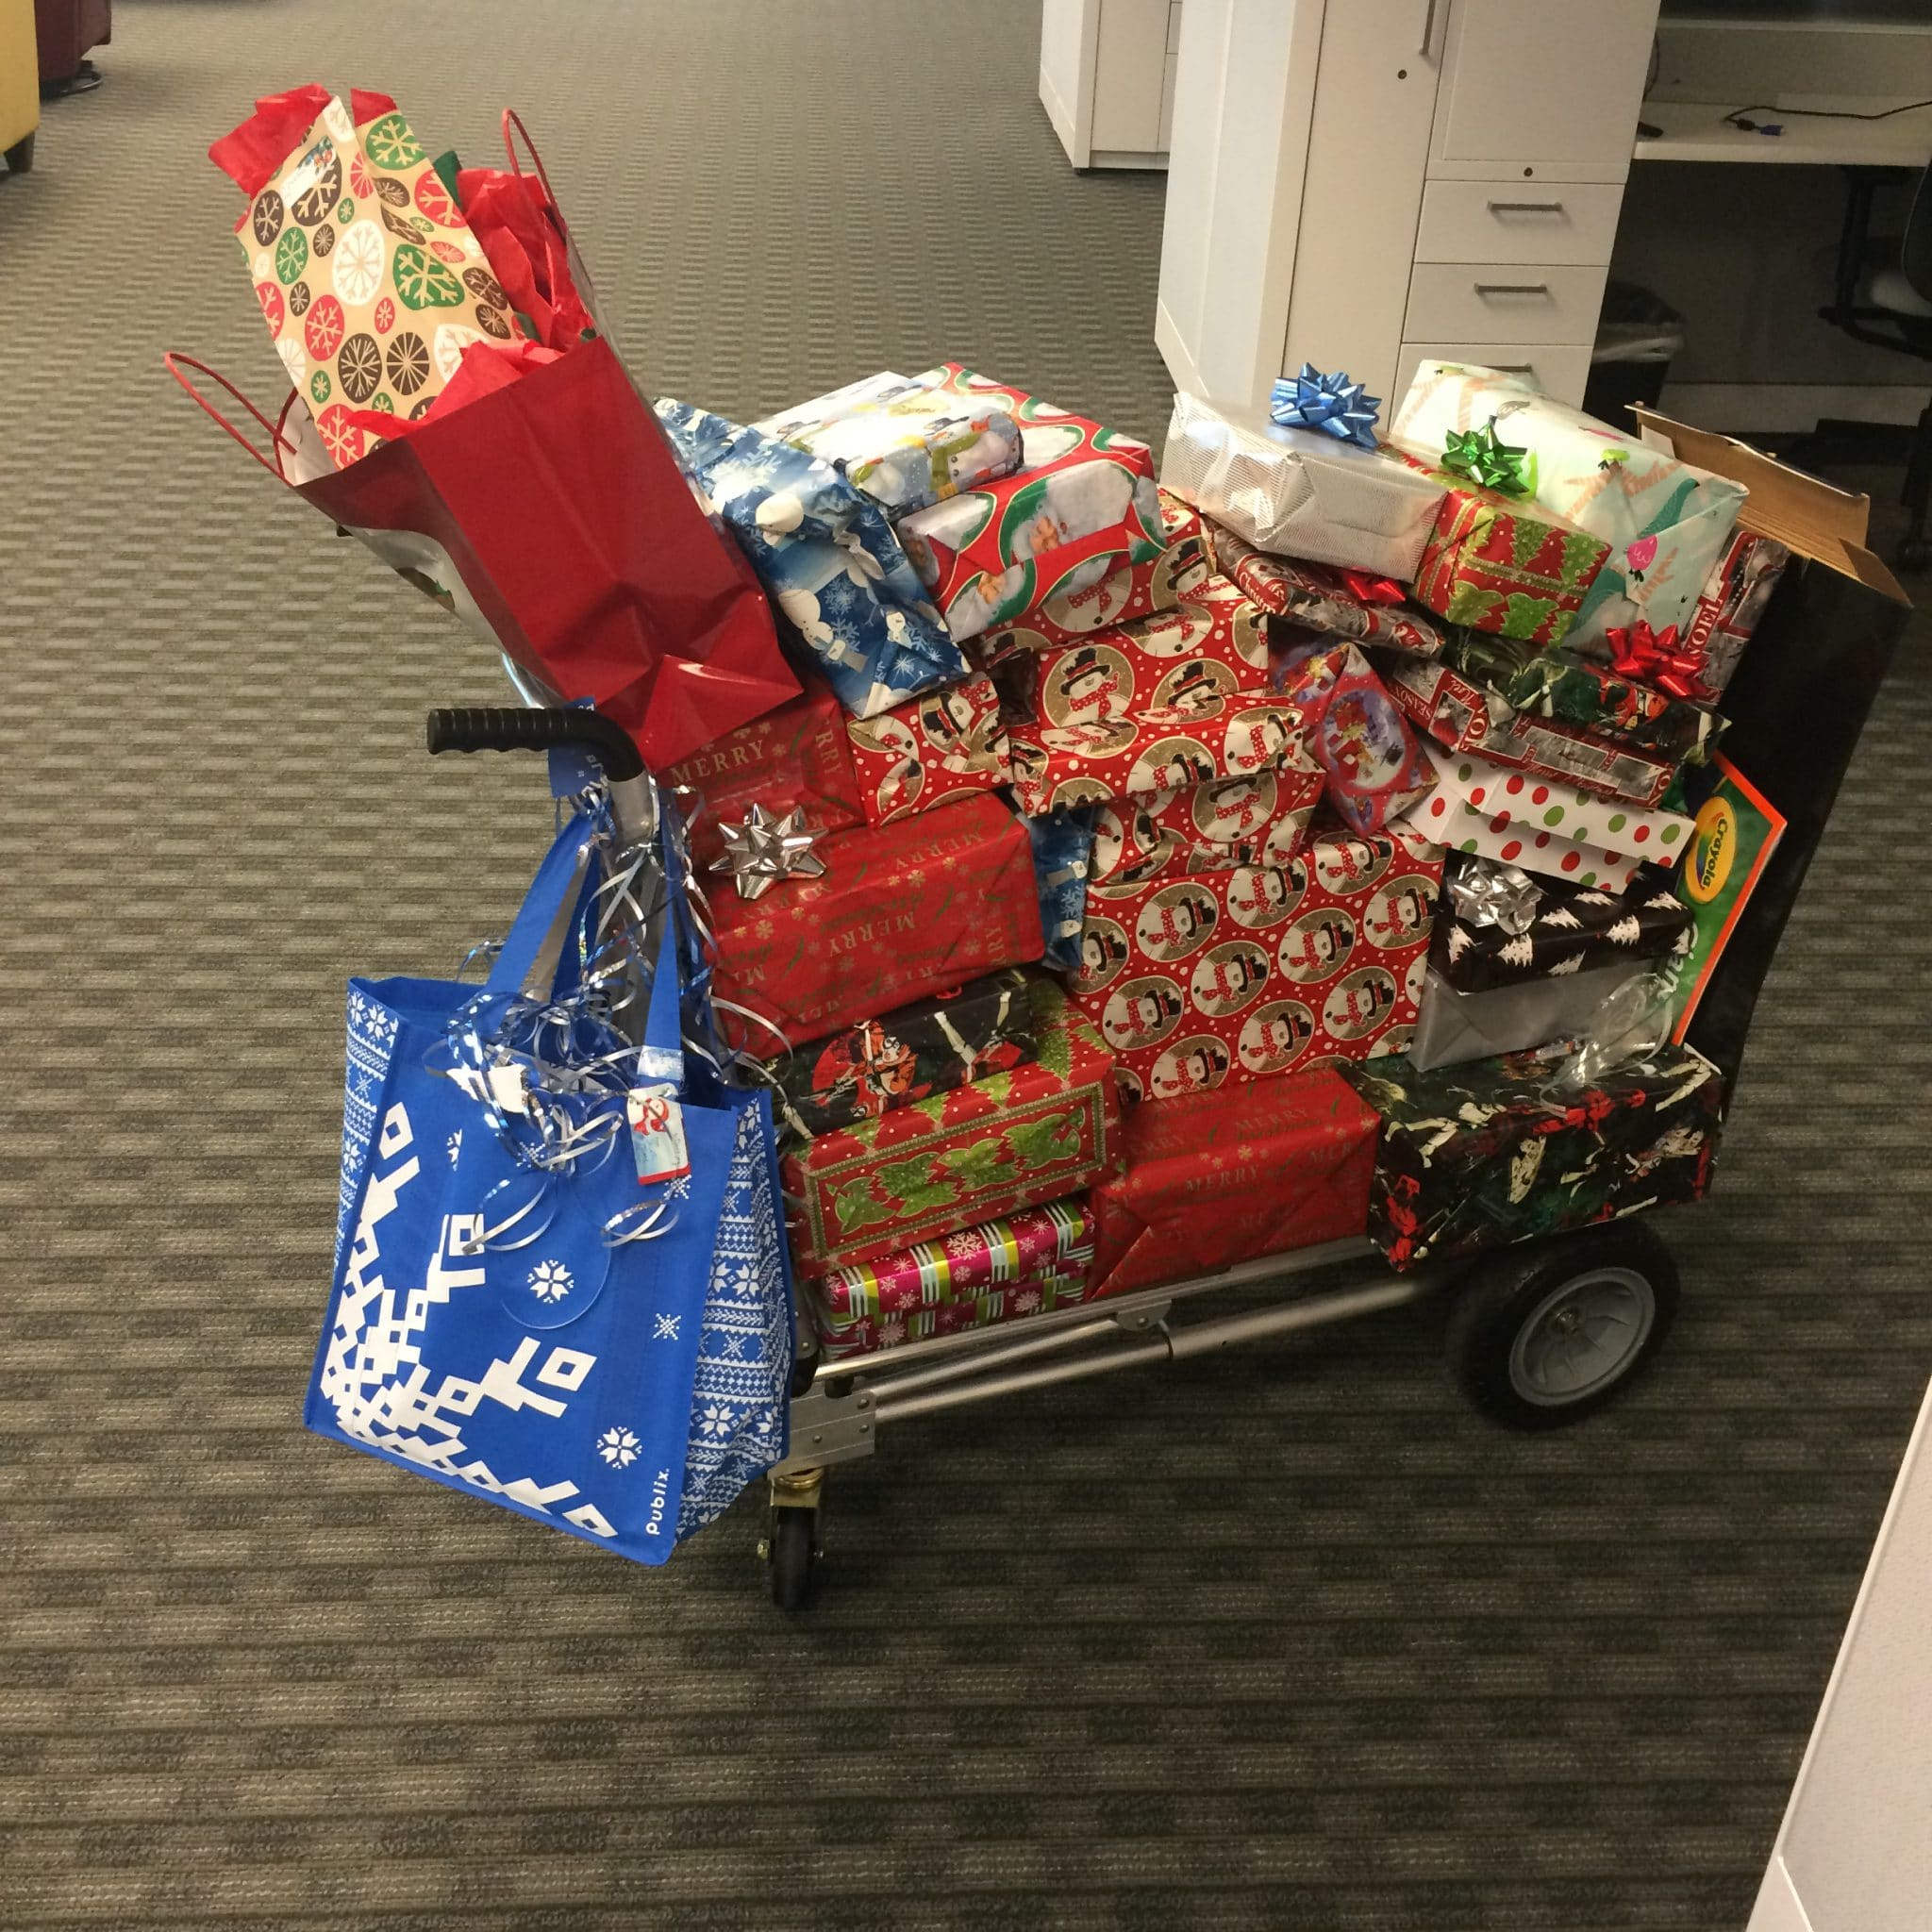 IDology Adopts a Family in Need this Holiday Season